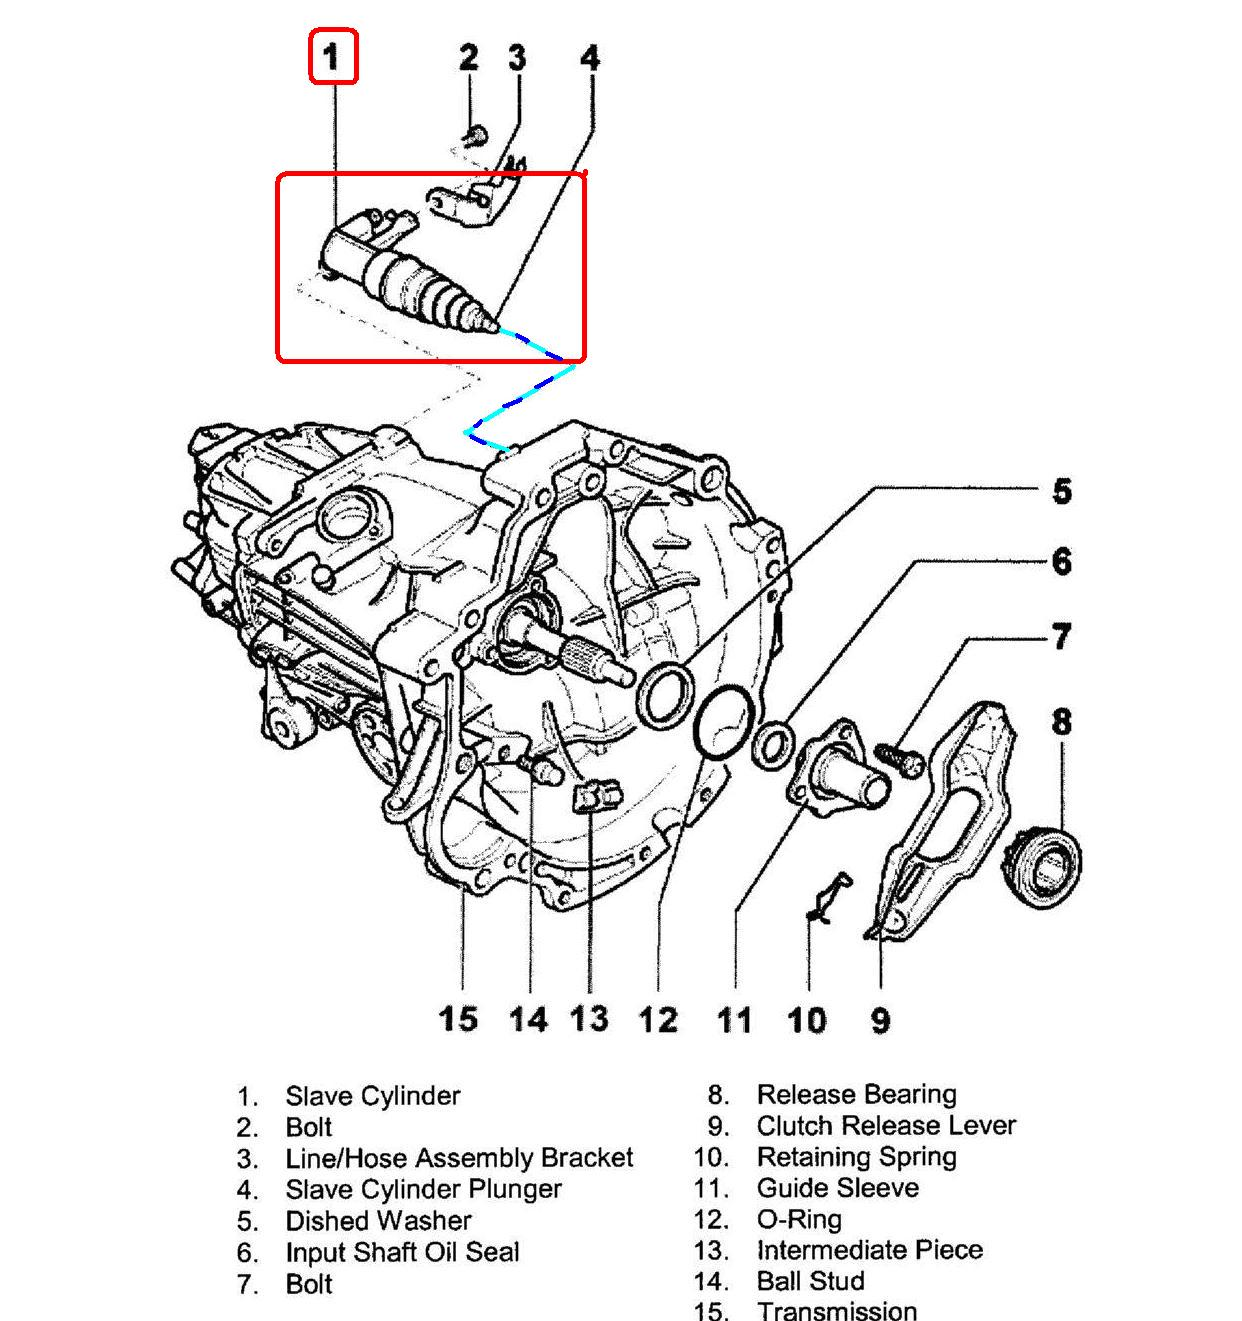 brush hog clutch diagram vw hydraulic clutch diagram i have lost all pressure behind my clutch pedal. if i pump ... #5